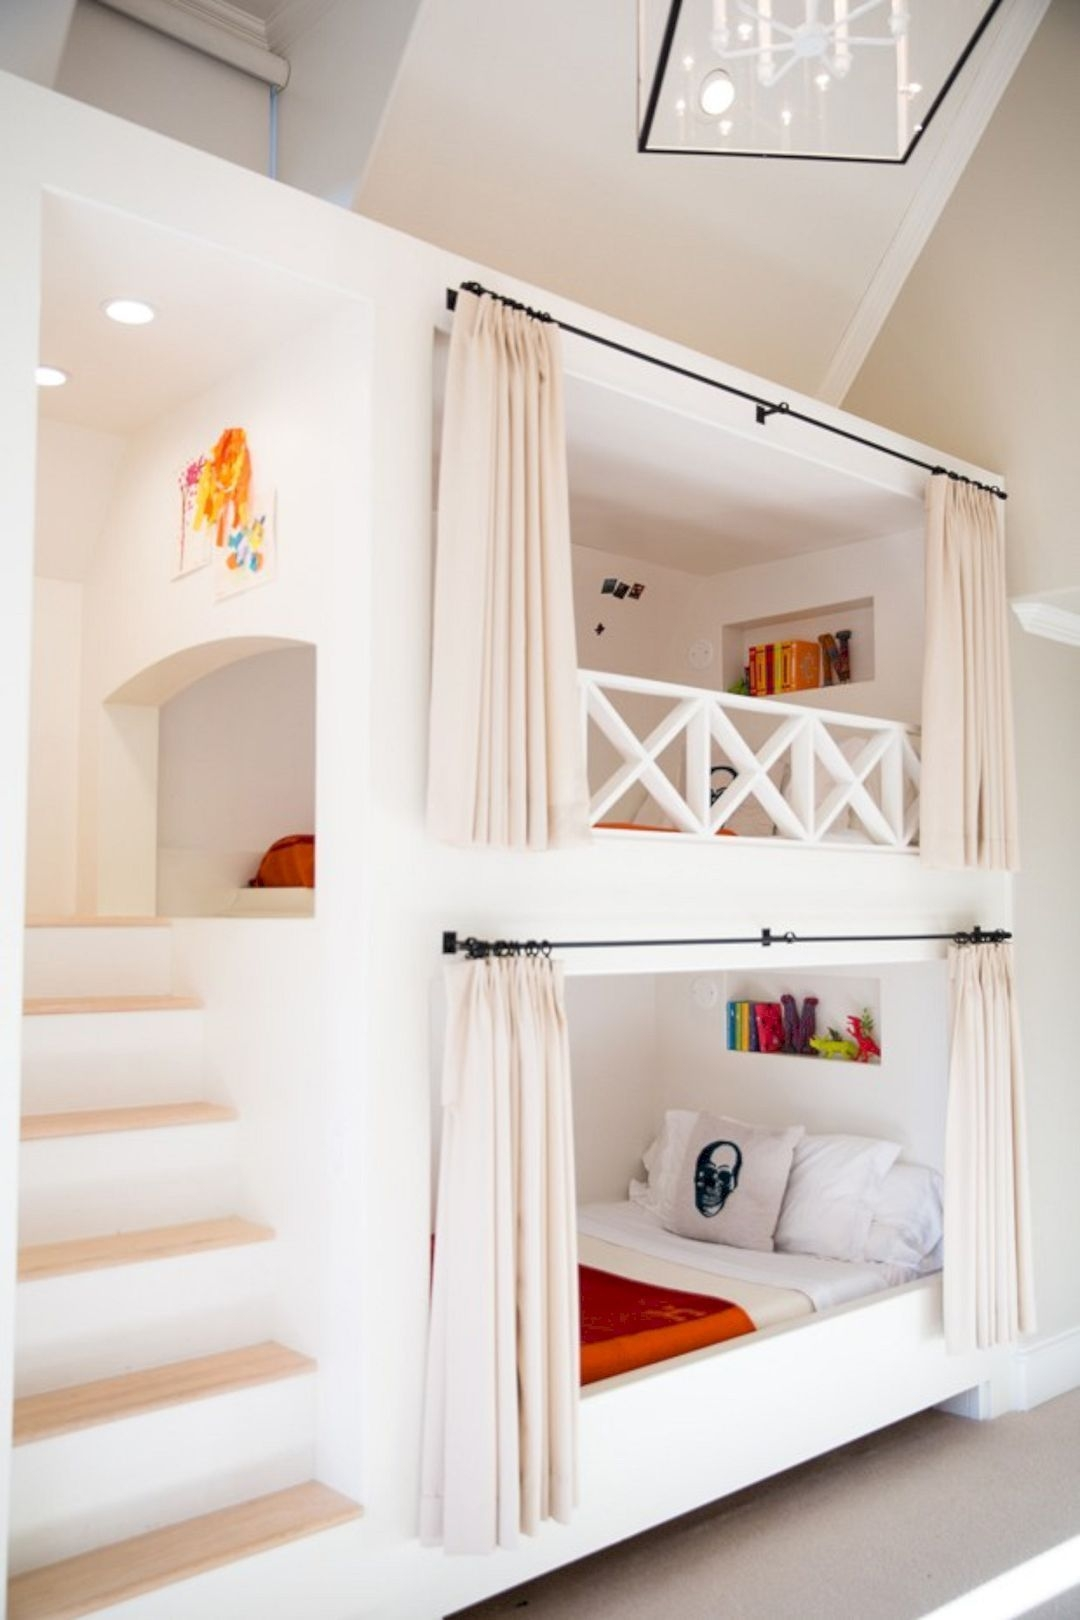 Adorable Bedroom Kids Design Ideas That Looks So Funny 07